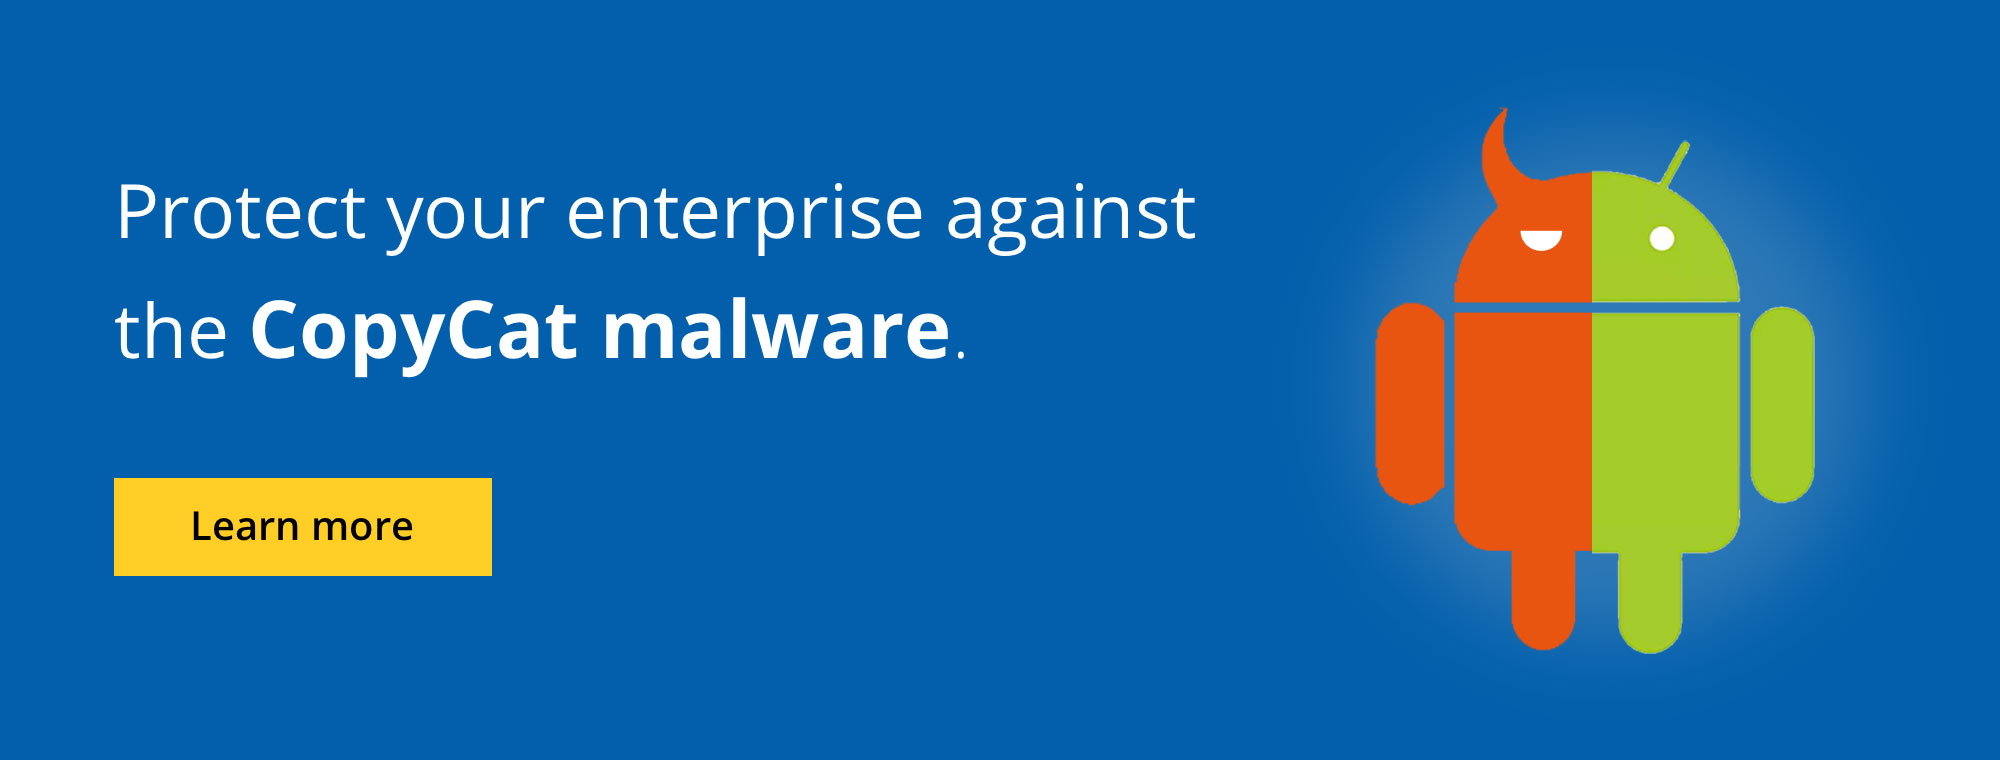 Protect your enterprise against the CopyCat Malware.